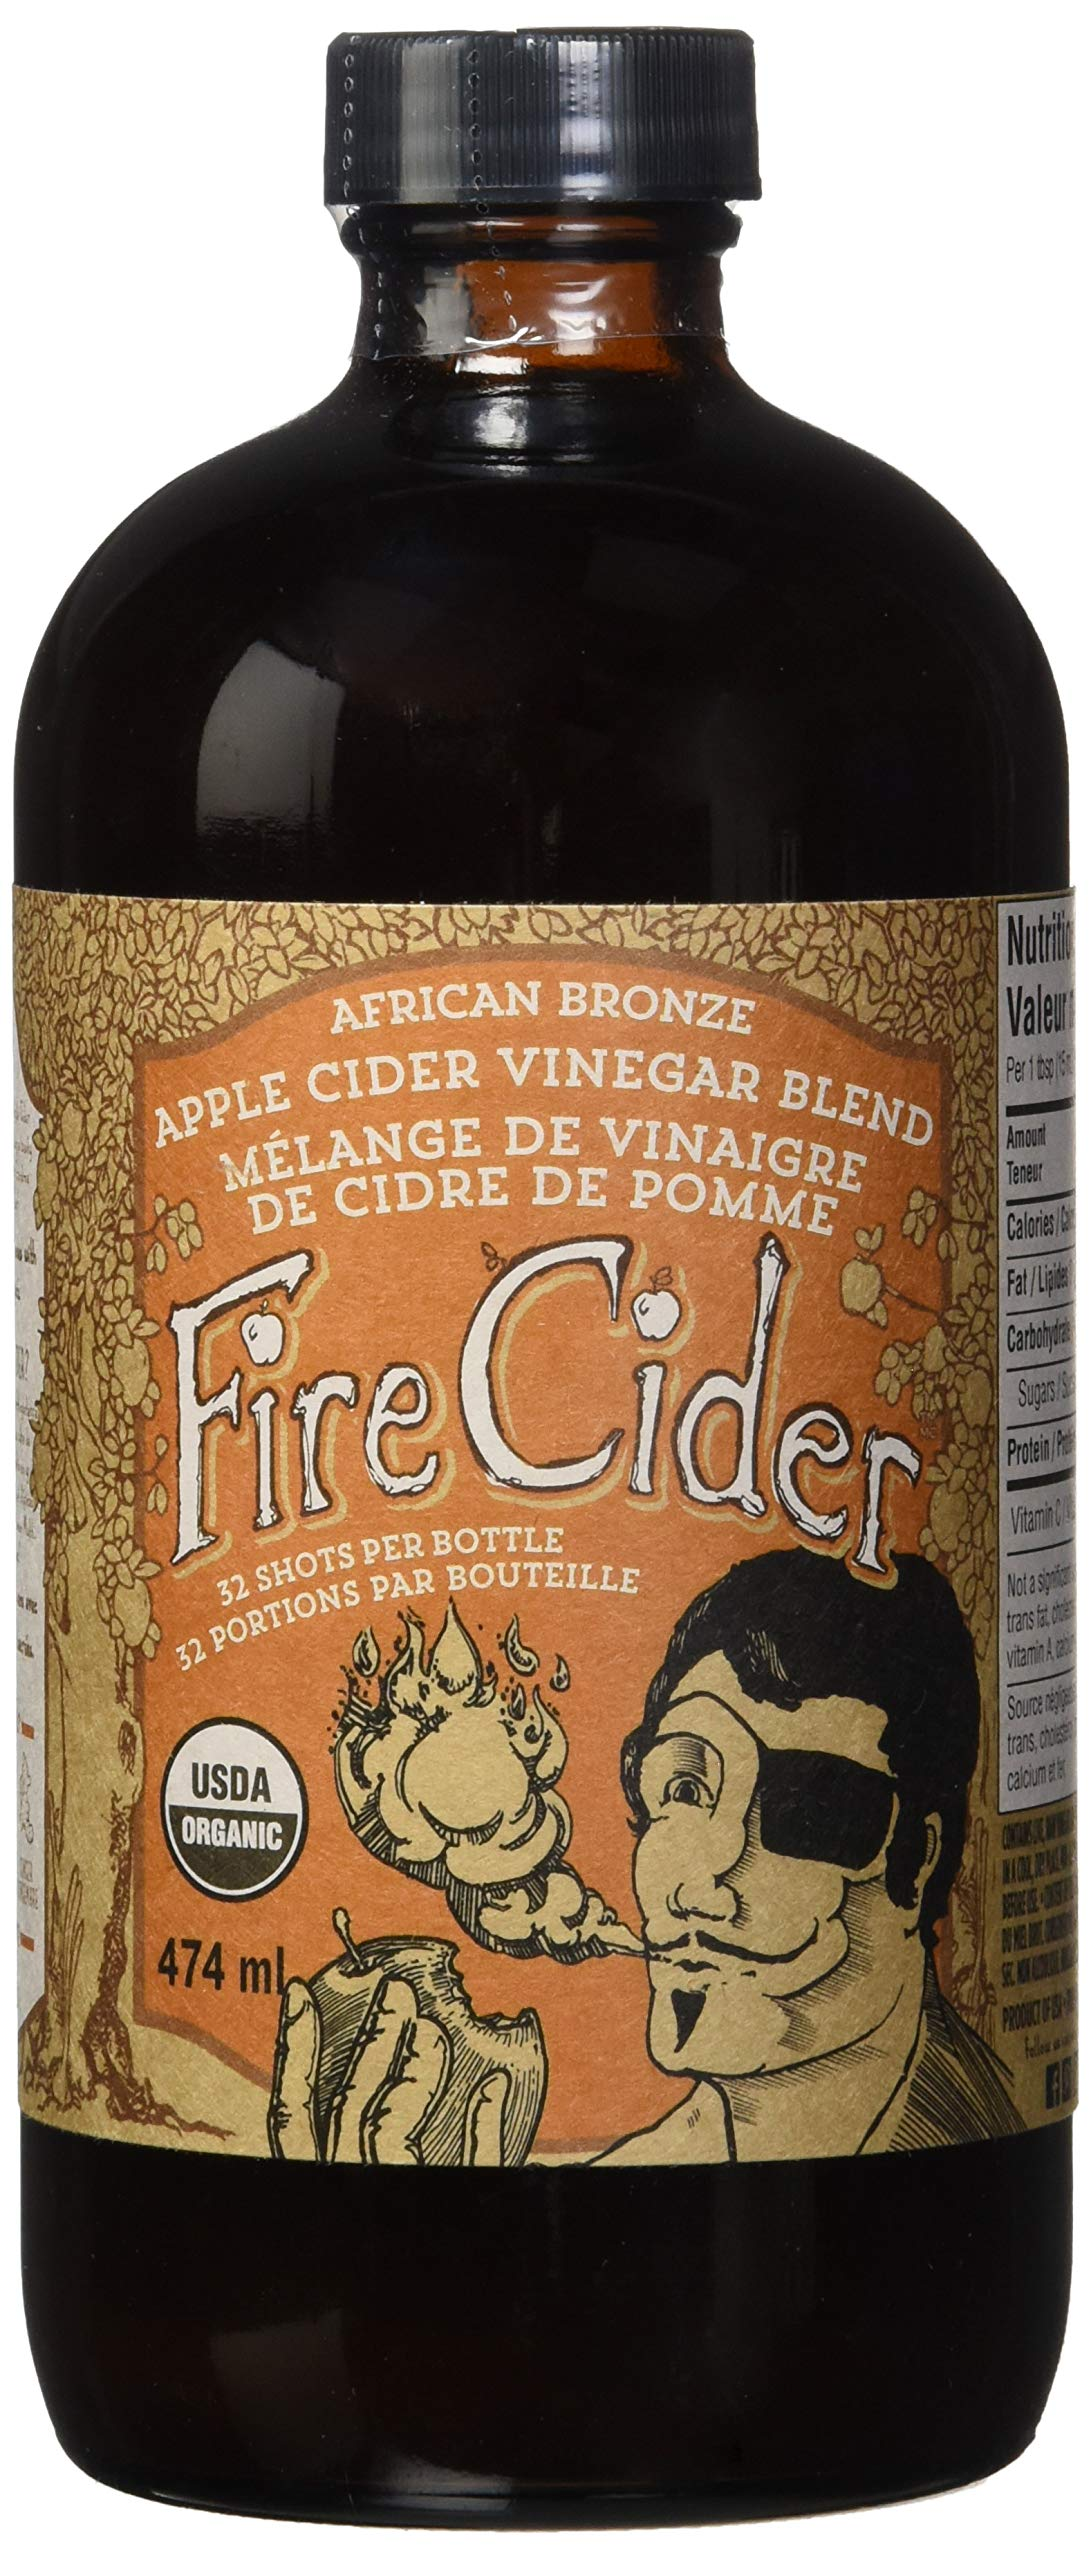 Amazon.com : Fire Cider, Apple Cider Vinegar Tonic with